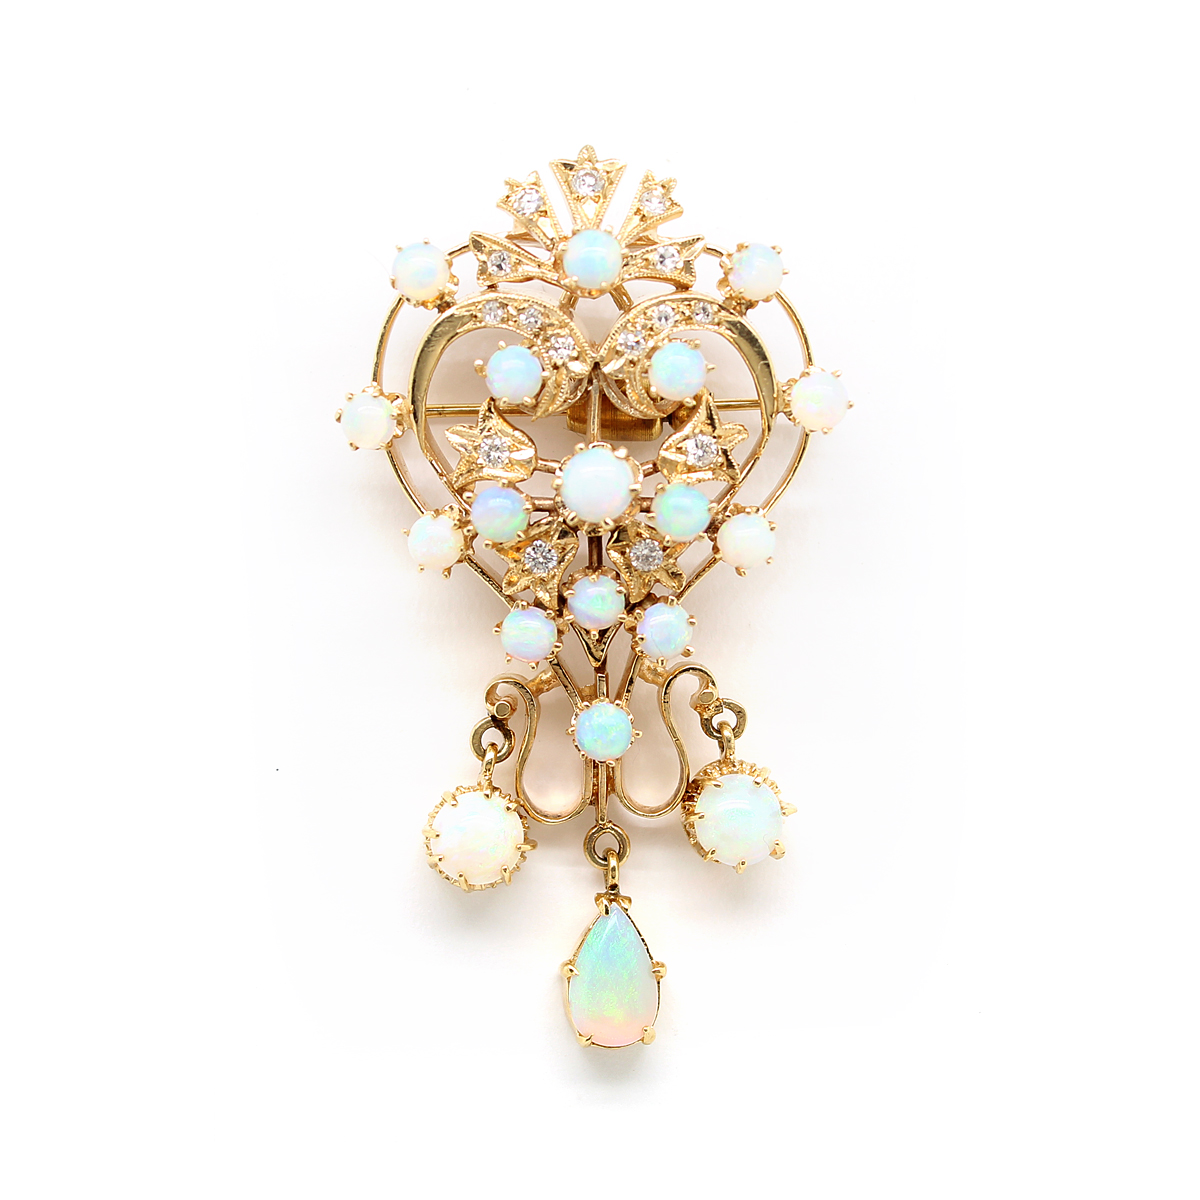 Vintage 14 Karat Yellow Gold Opal and Diamond Pin and Pendant